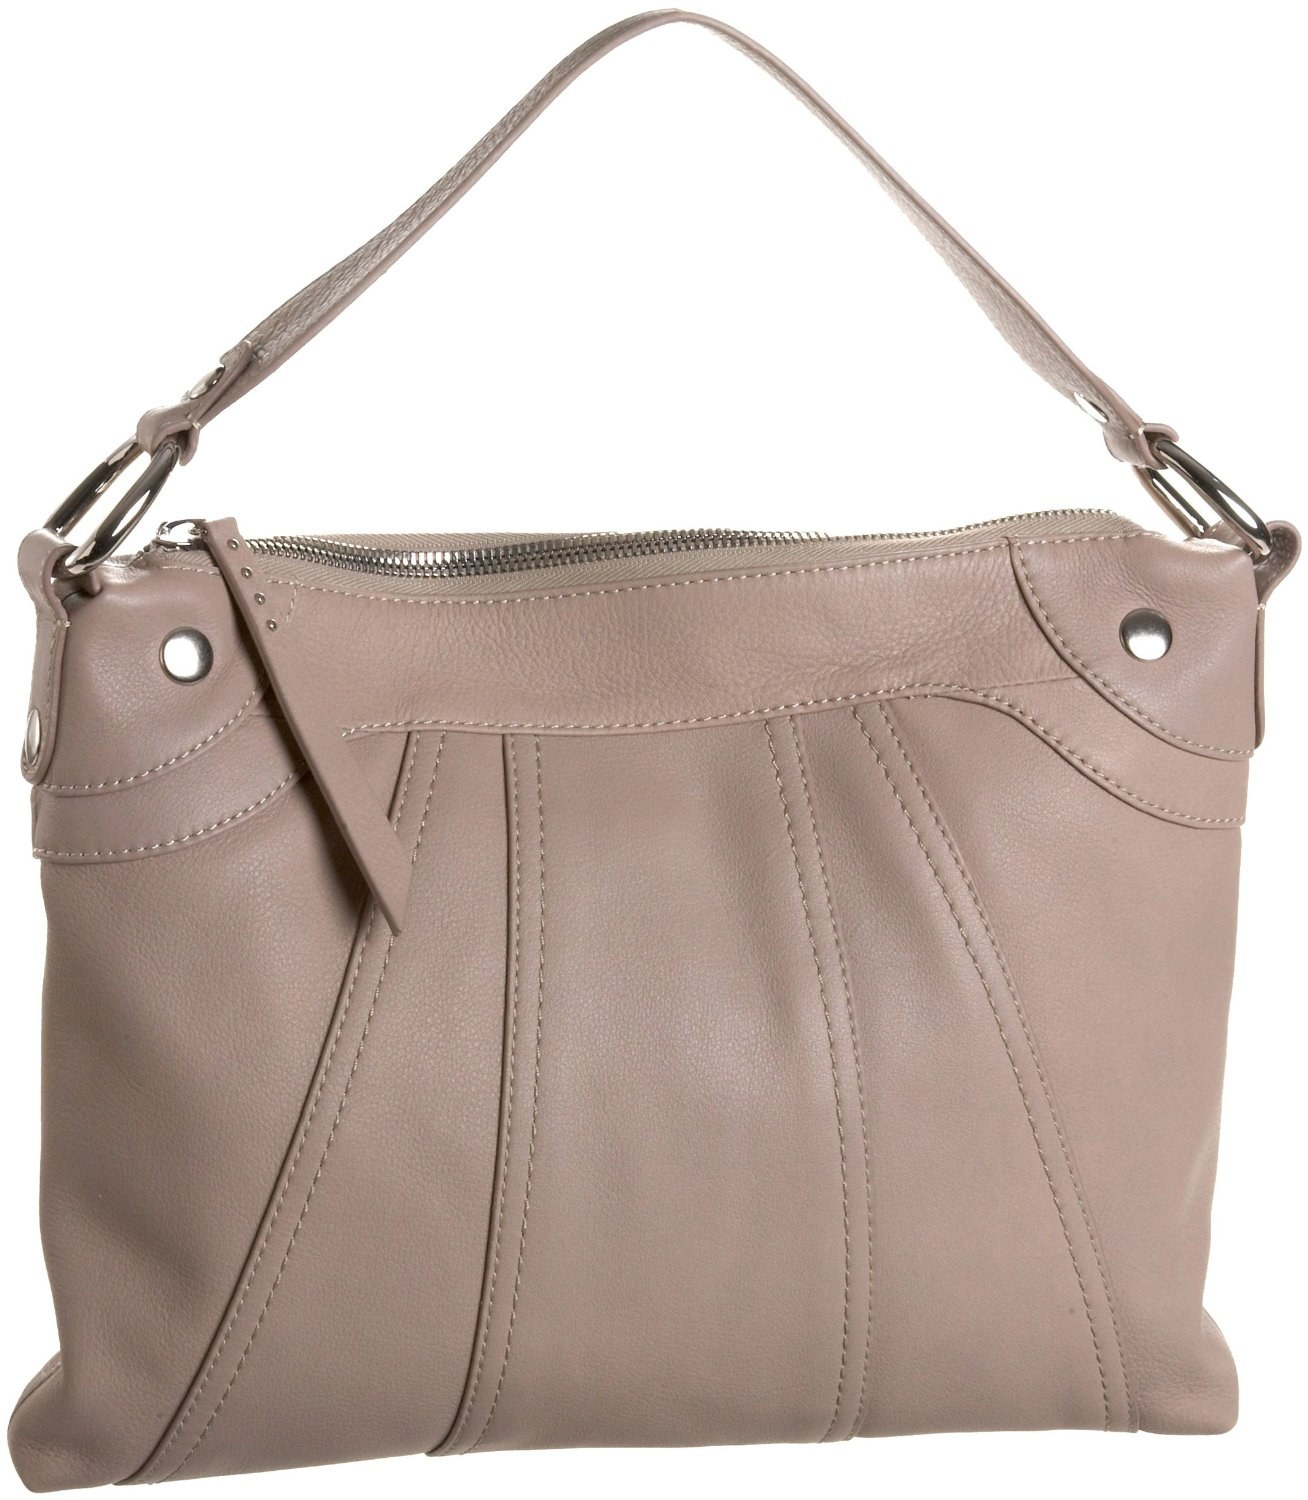 Hobo International Upper Hand Shoulder Bag 115